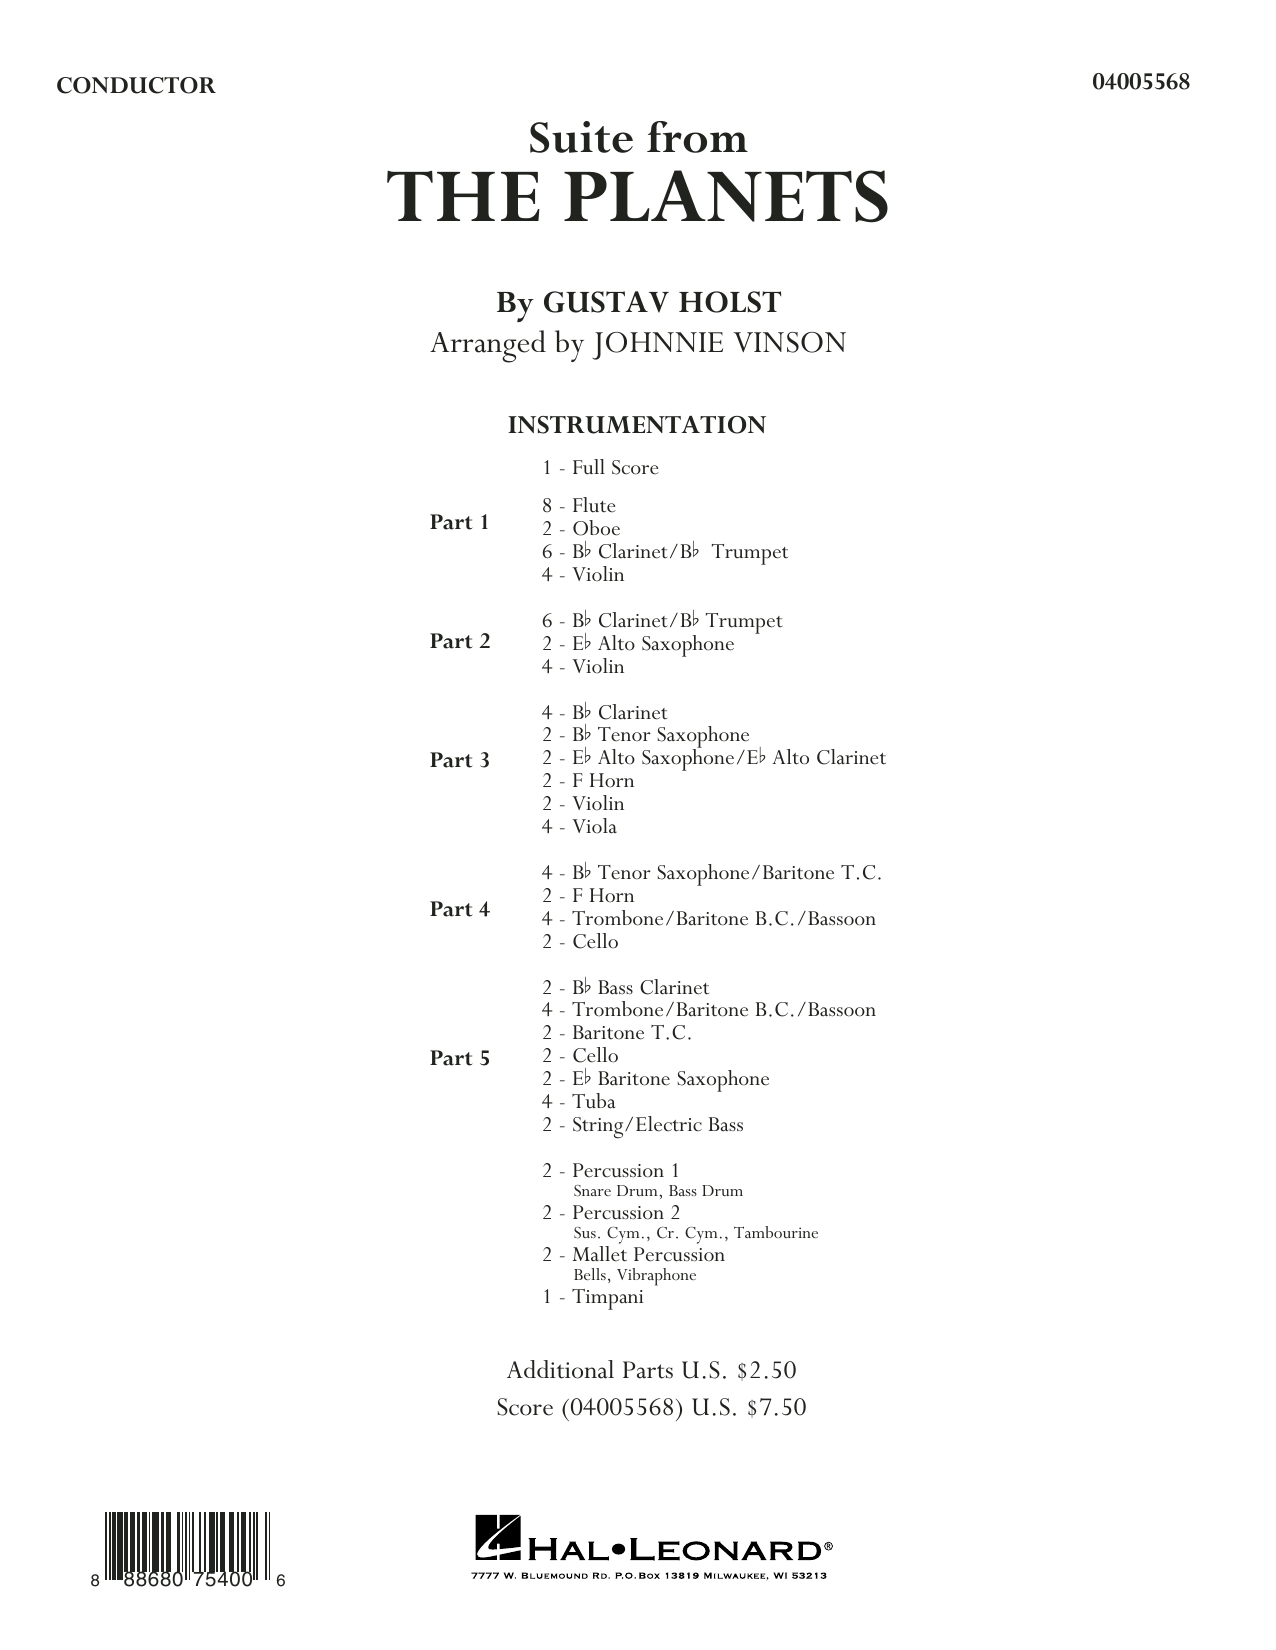 Suite from the Planets - Conductor Score (Full Score) (Concert Band: Flex-Band)